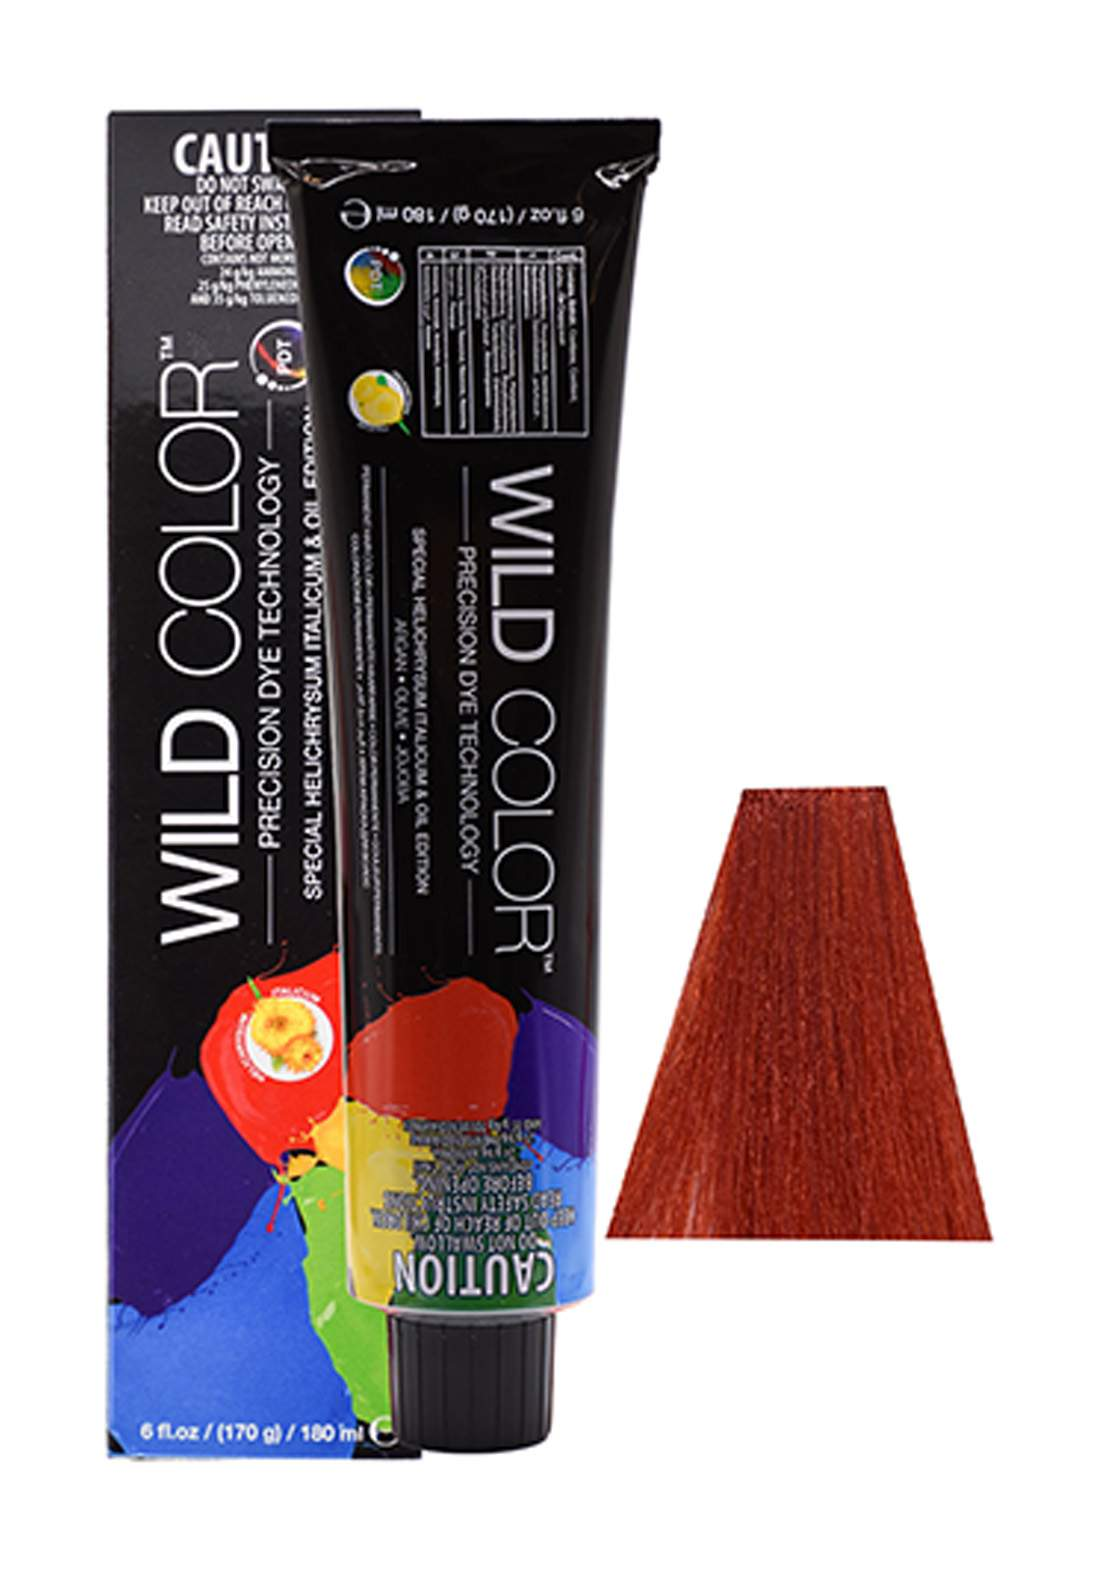 Wild Color Hair Color Cream 8.6 8R - Light Red Blond صبغة شعر